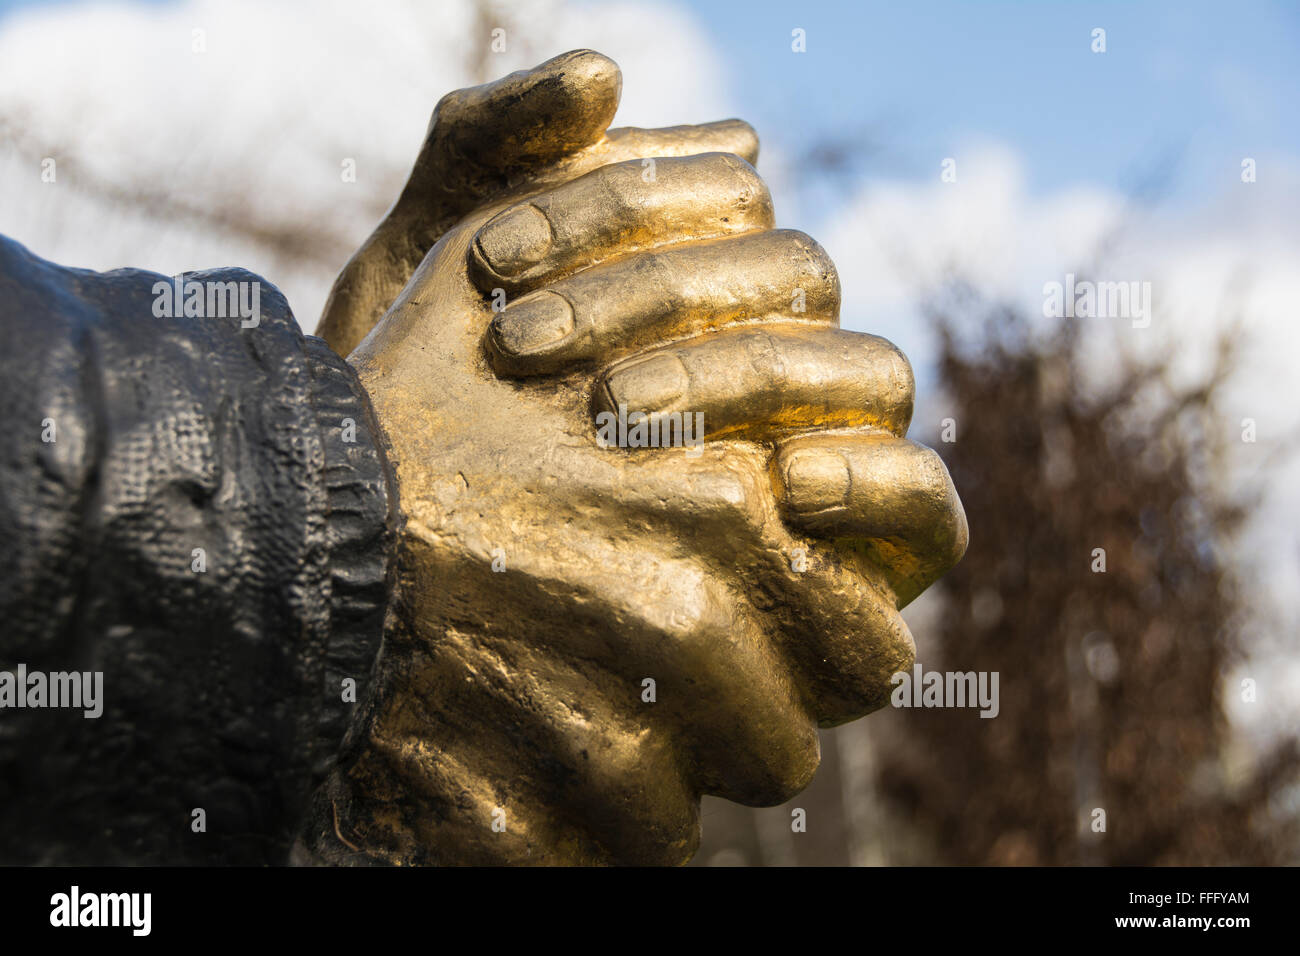 Hands clasped in prayer on the Sir Thomas Moore statue, Cheyne Walk, Chelsea, London, England, UK, - Stock Image